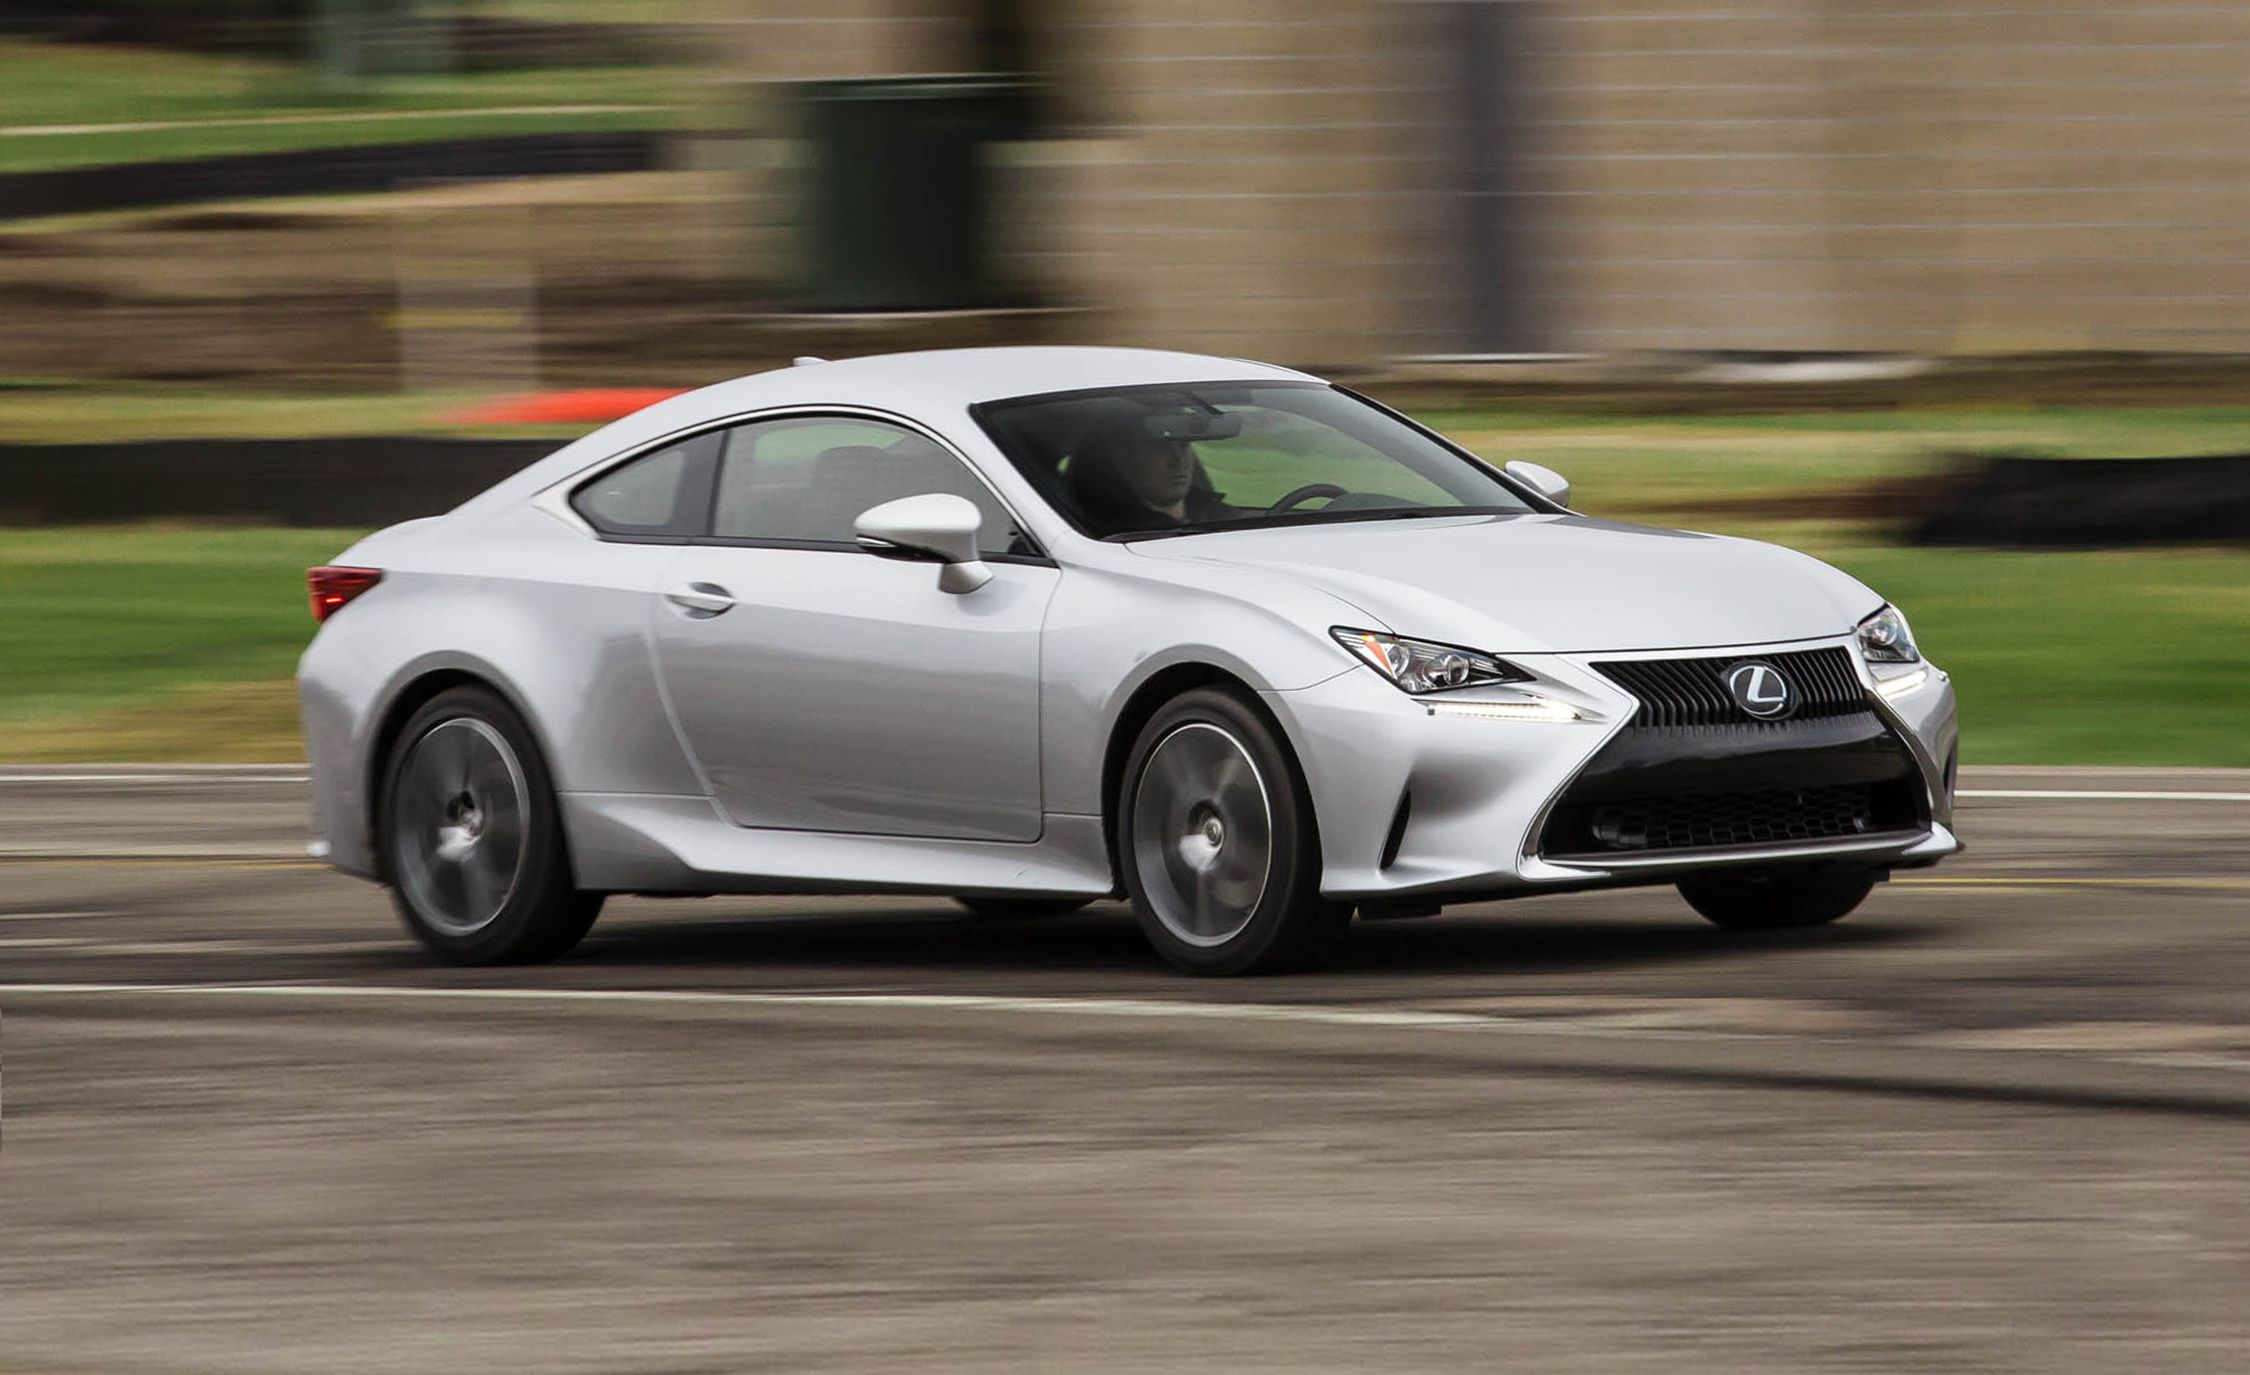 2020 Lexus RC Review, Pricing, and Specs Lexus sports